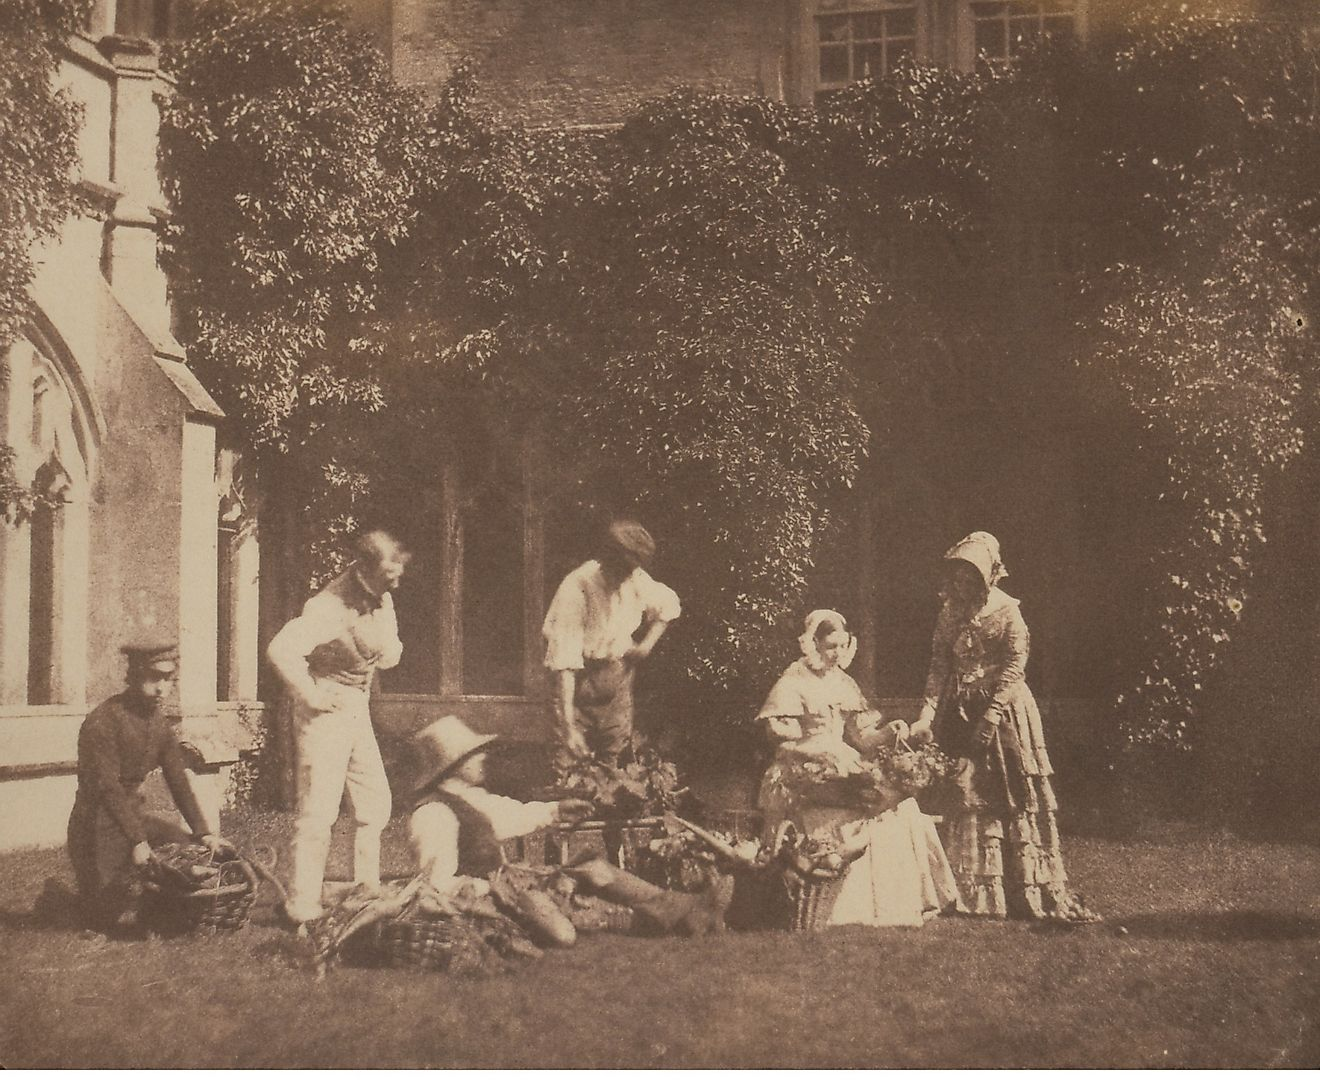 An 1844 photograph taken by William Henry Fox Talbot.